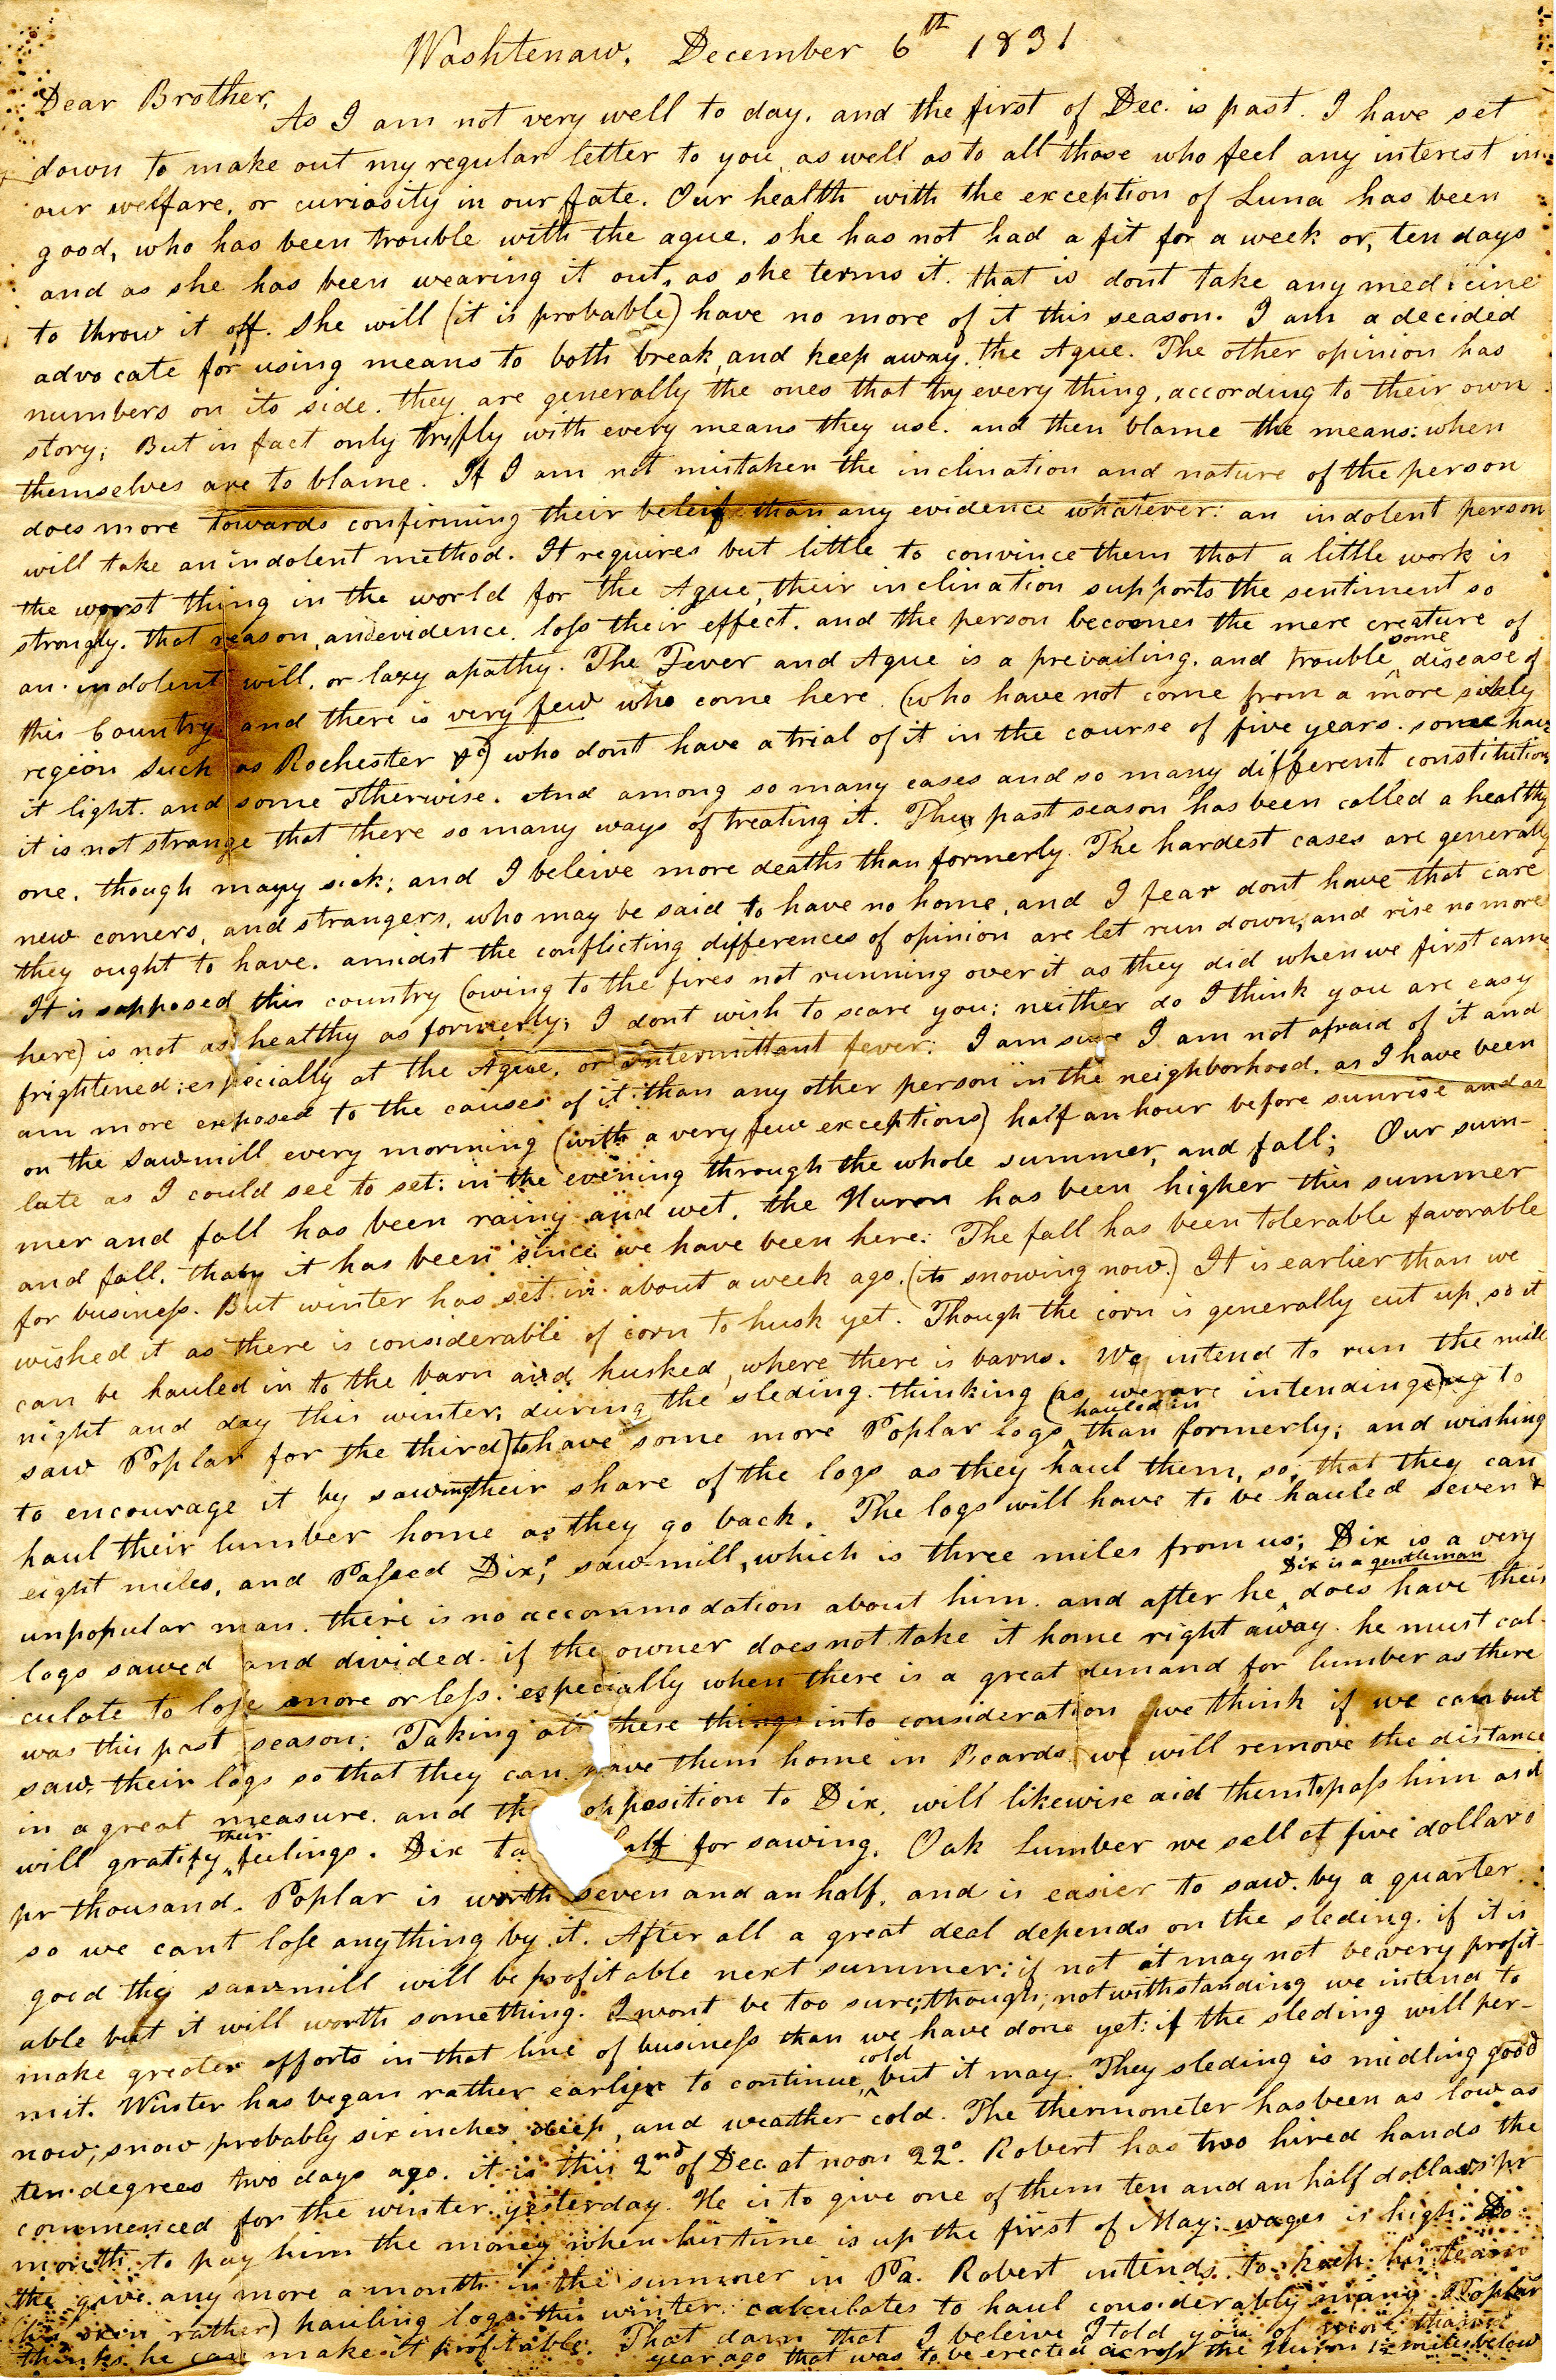 Letter From John Geddes to William Geddes, December 6, 1831 image